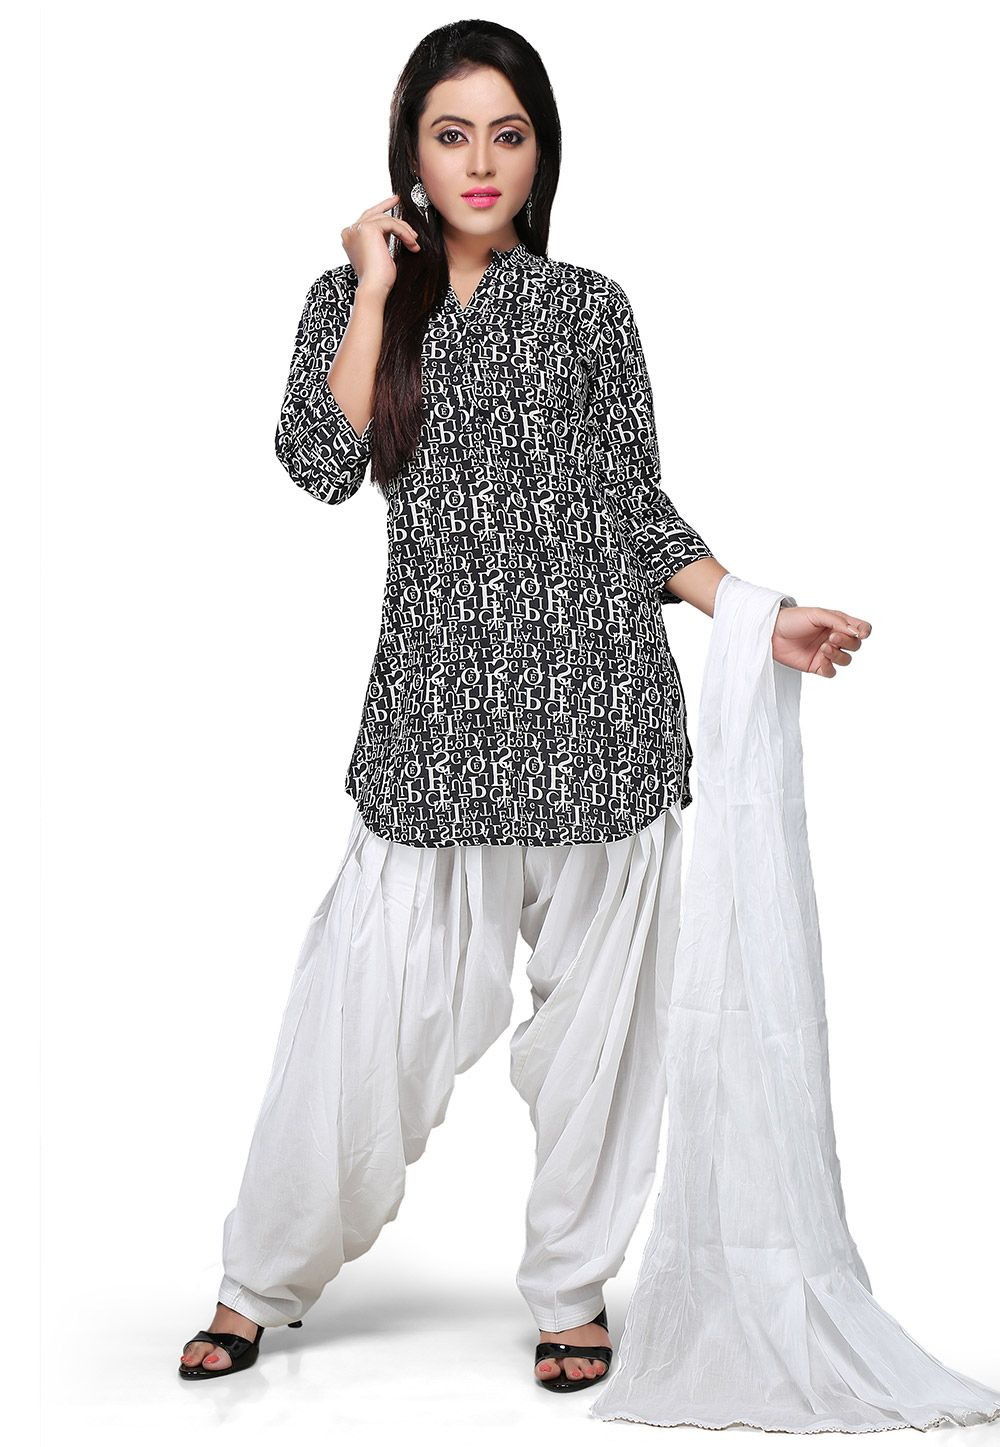 57291dddb3 BLACK AND WHITE COTTON READYMADE PATIALA SUIT | Salwar Kameez ...